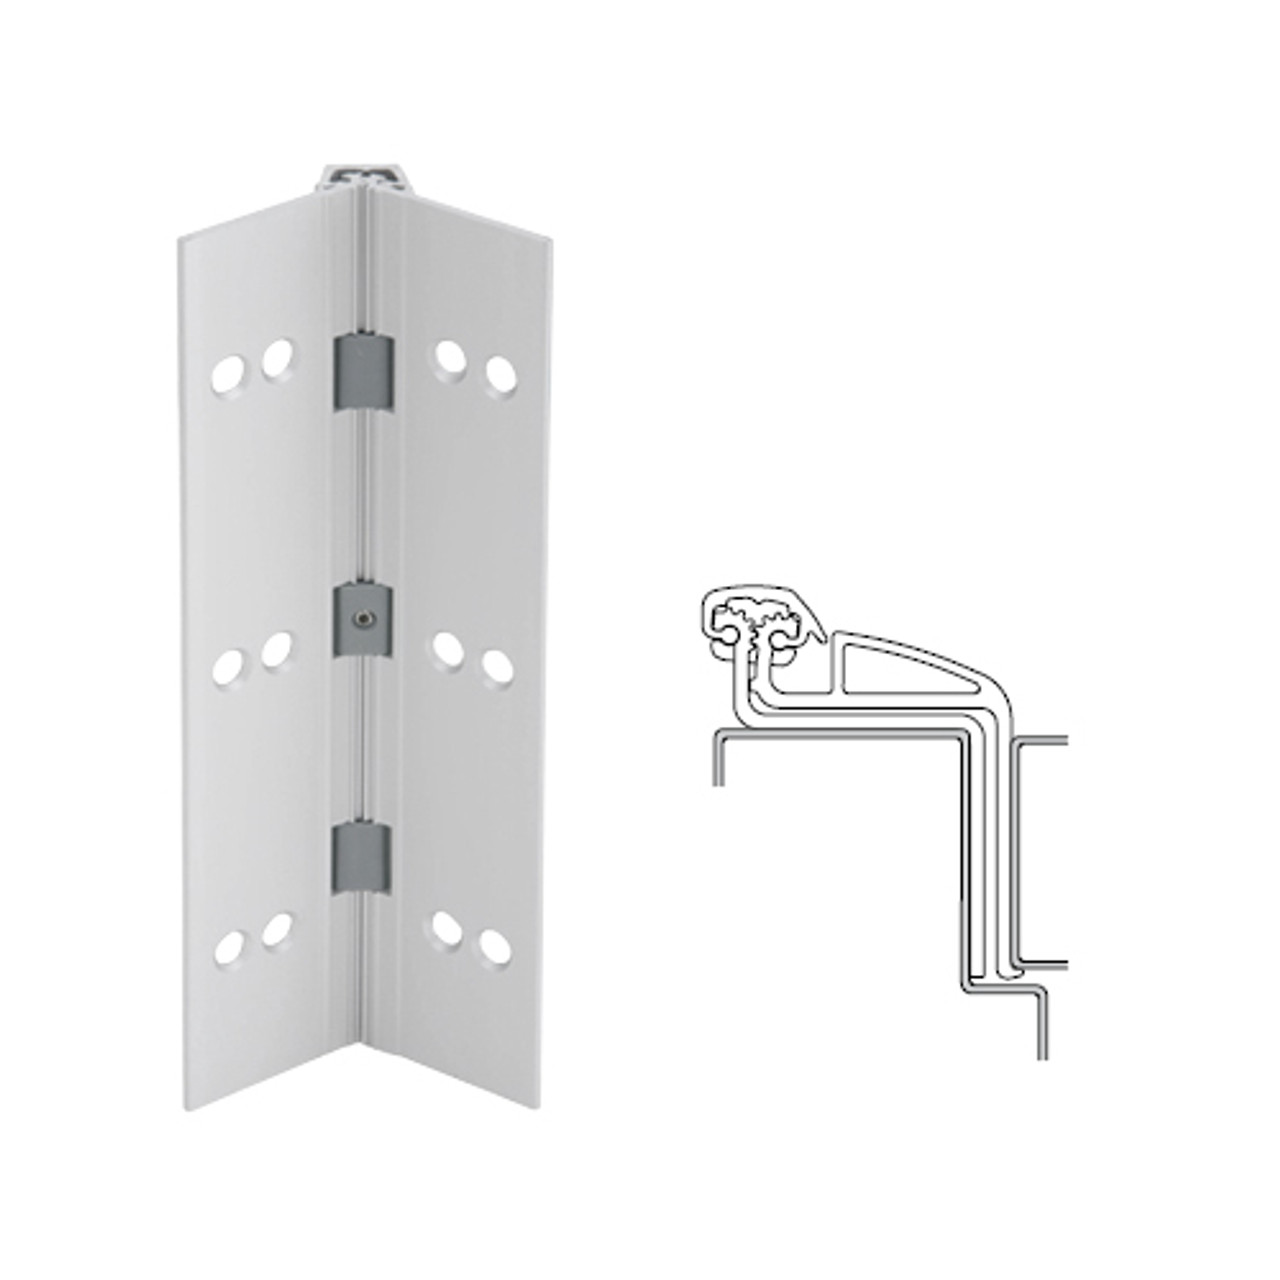 041XY-US28-95-TEKWD IVES Full Mortise Continuous Geared Hinges with Wood Screws in Satin Aluminum